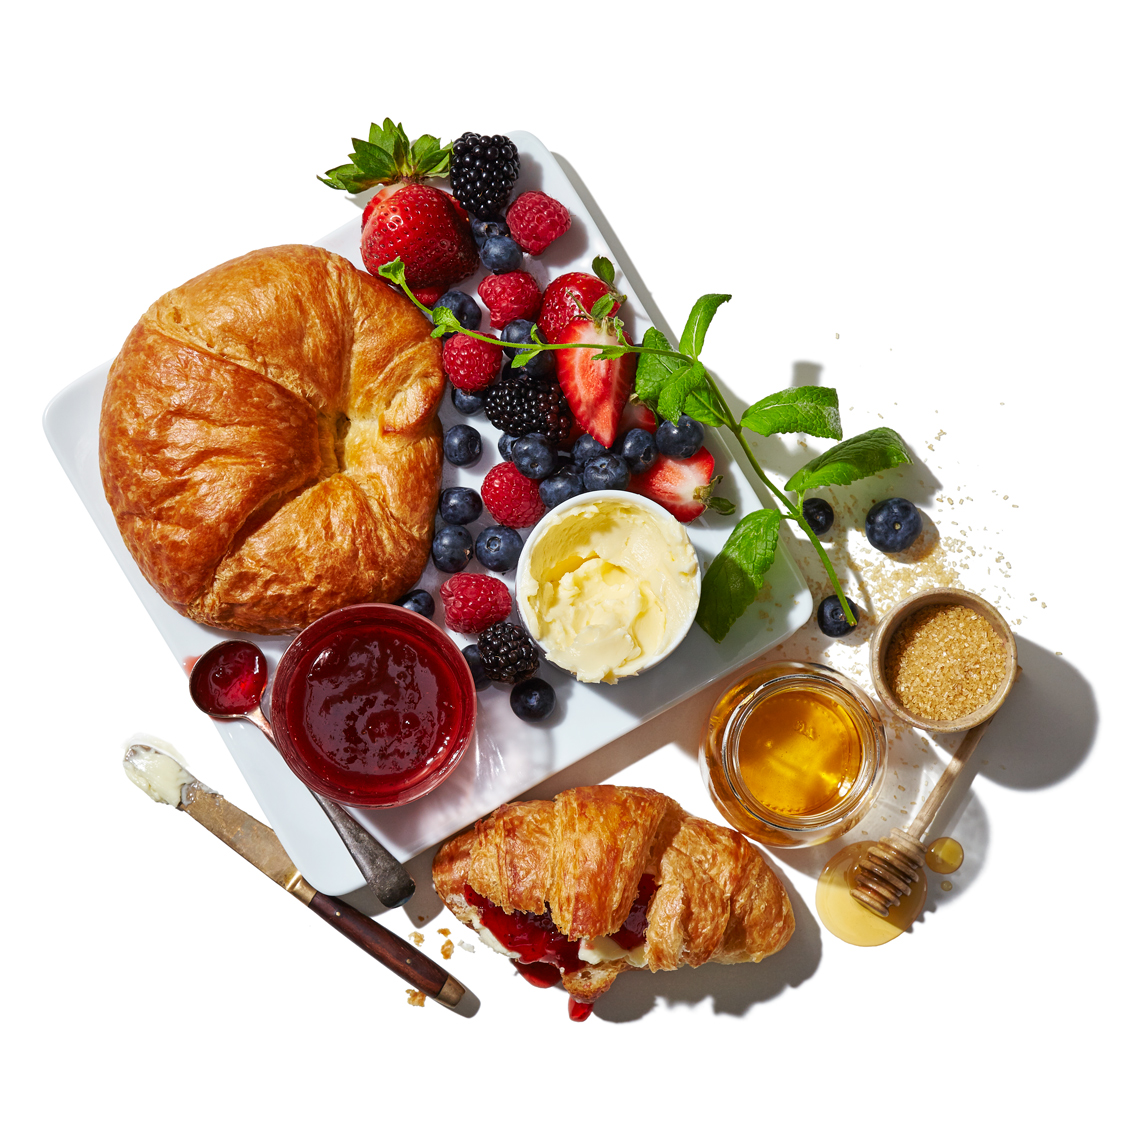 Abundant_Croissant_Jam-butter-honey-sugar-mint-berries-fruits